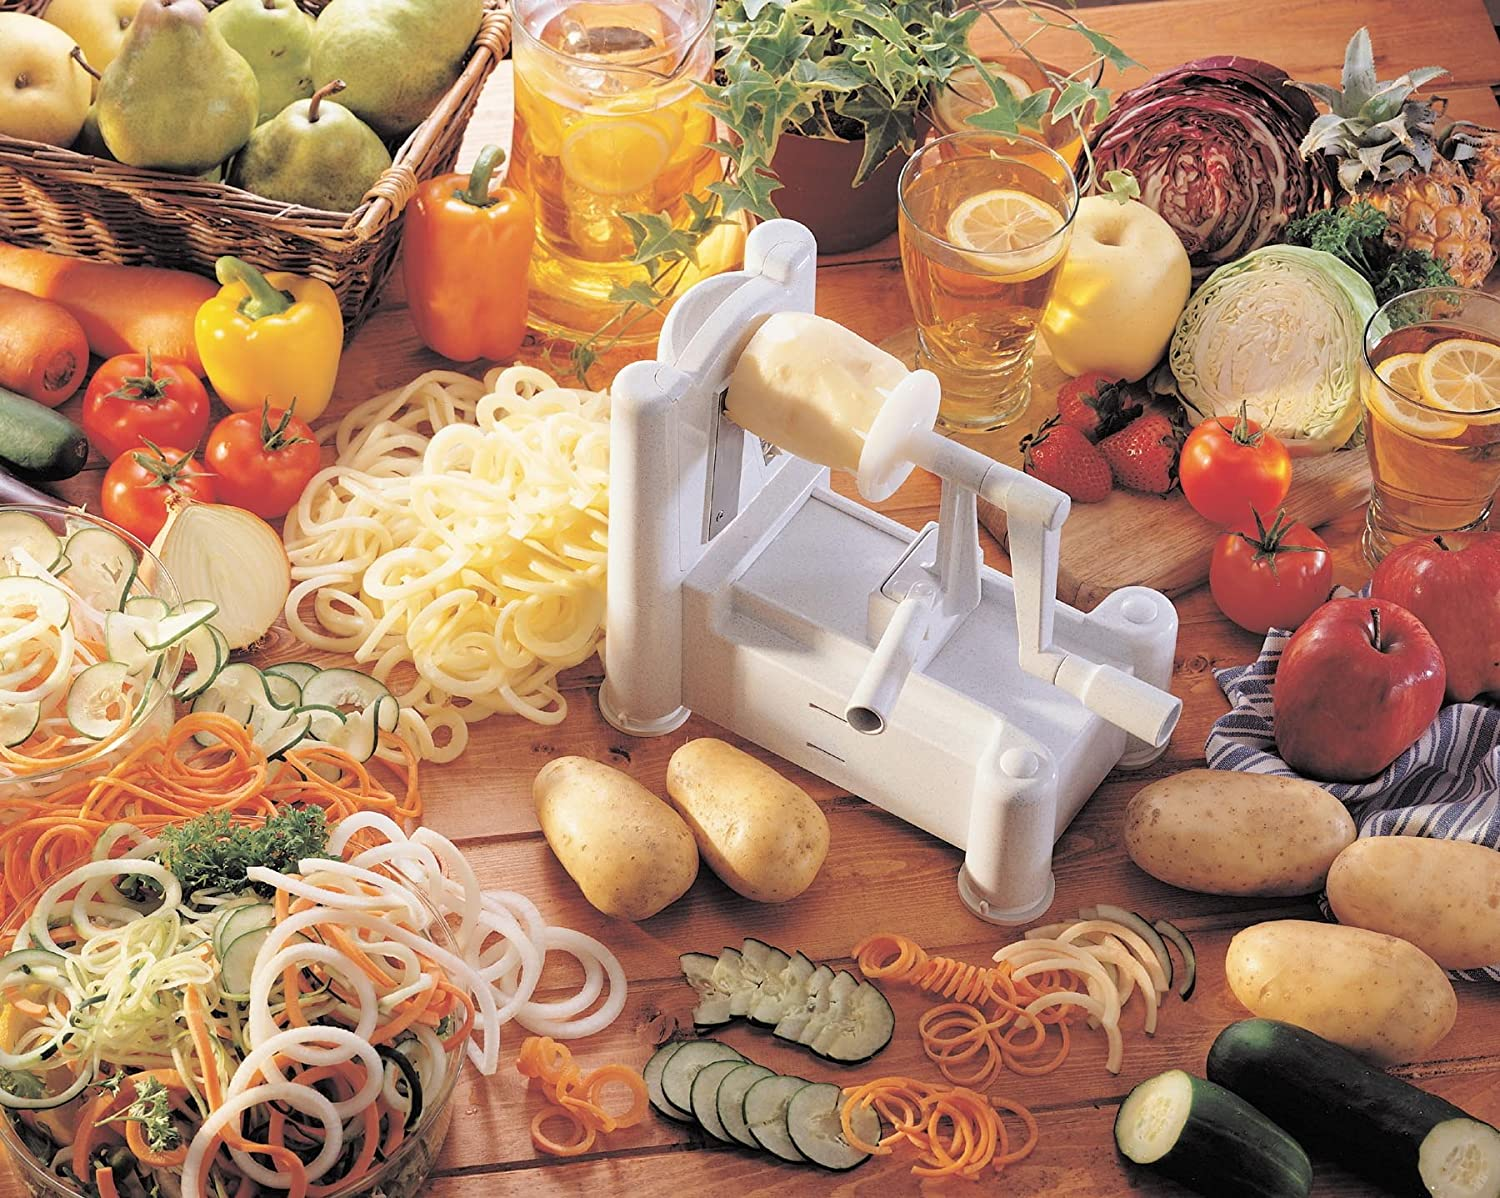 Make zoodles paderno world cuisine a4982799 reviews - Paderno world cuisine tri blade spiral vegetable slicer ...